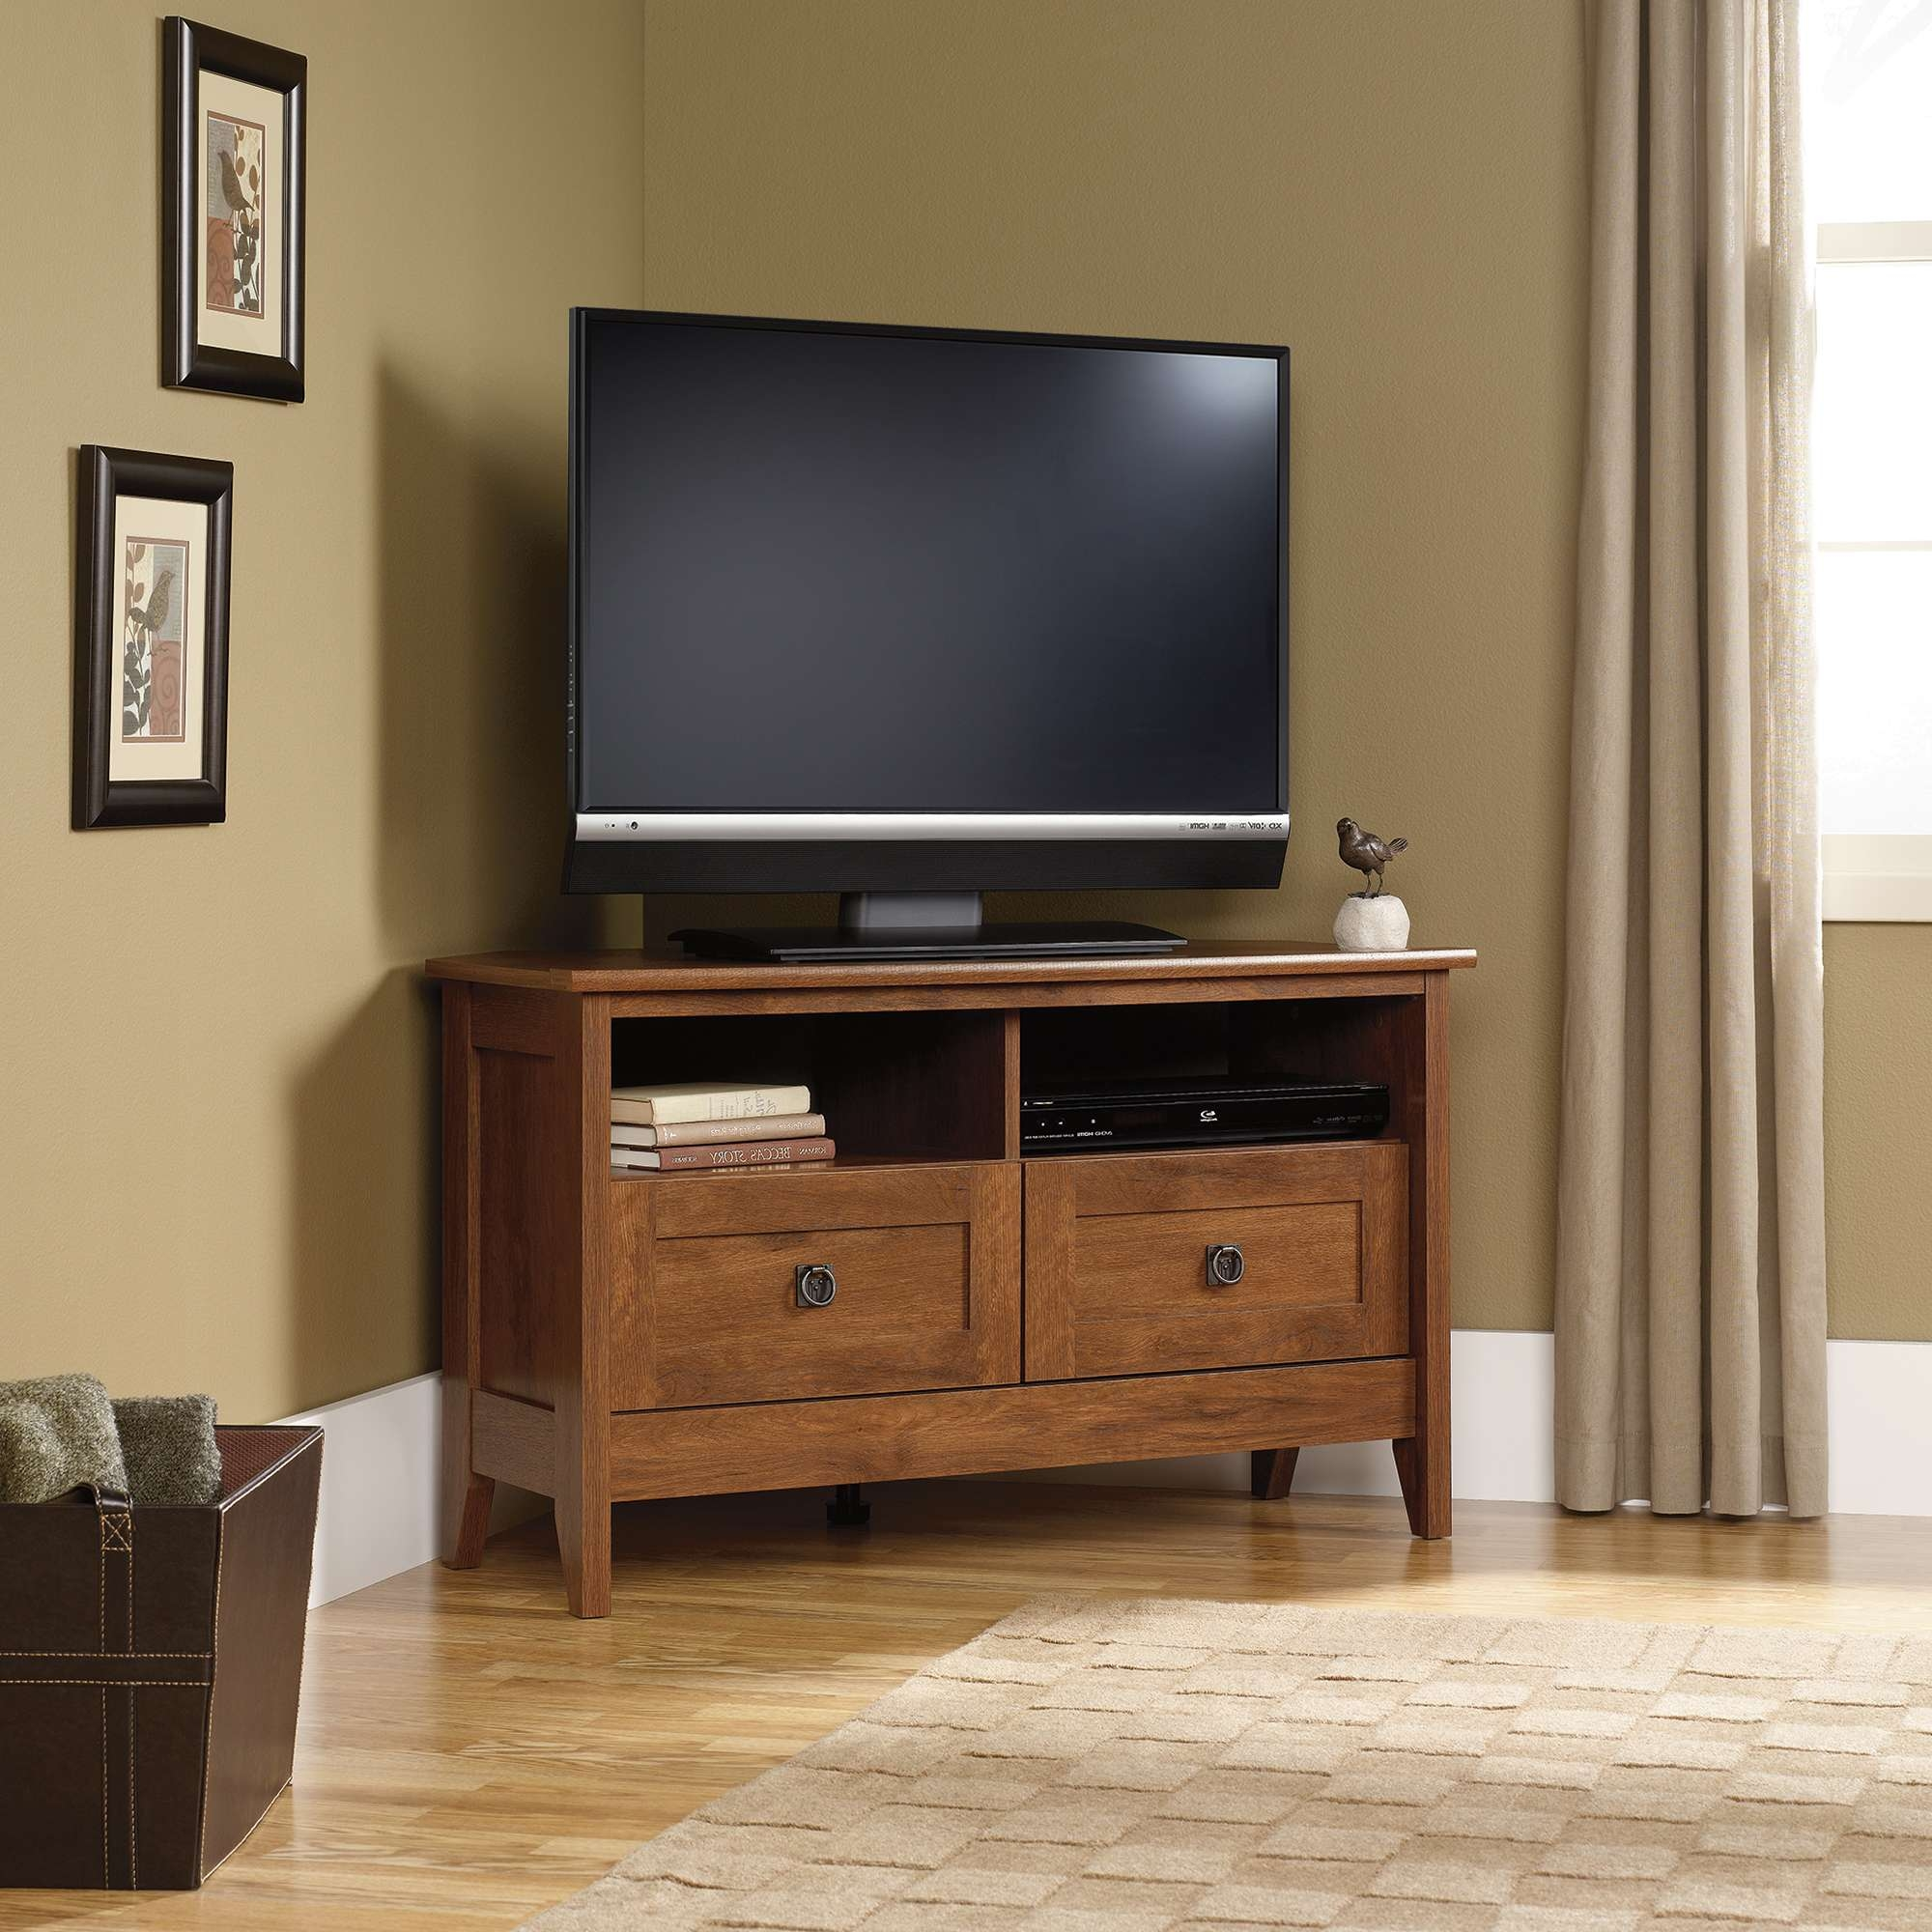 Sauder Select | Corner Tv Stand | 410627 | Sauder For Tv Stands For Corners (View 8 of 15)